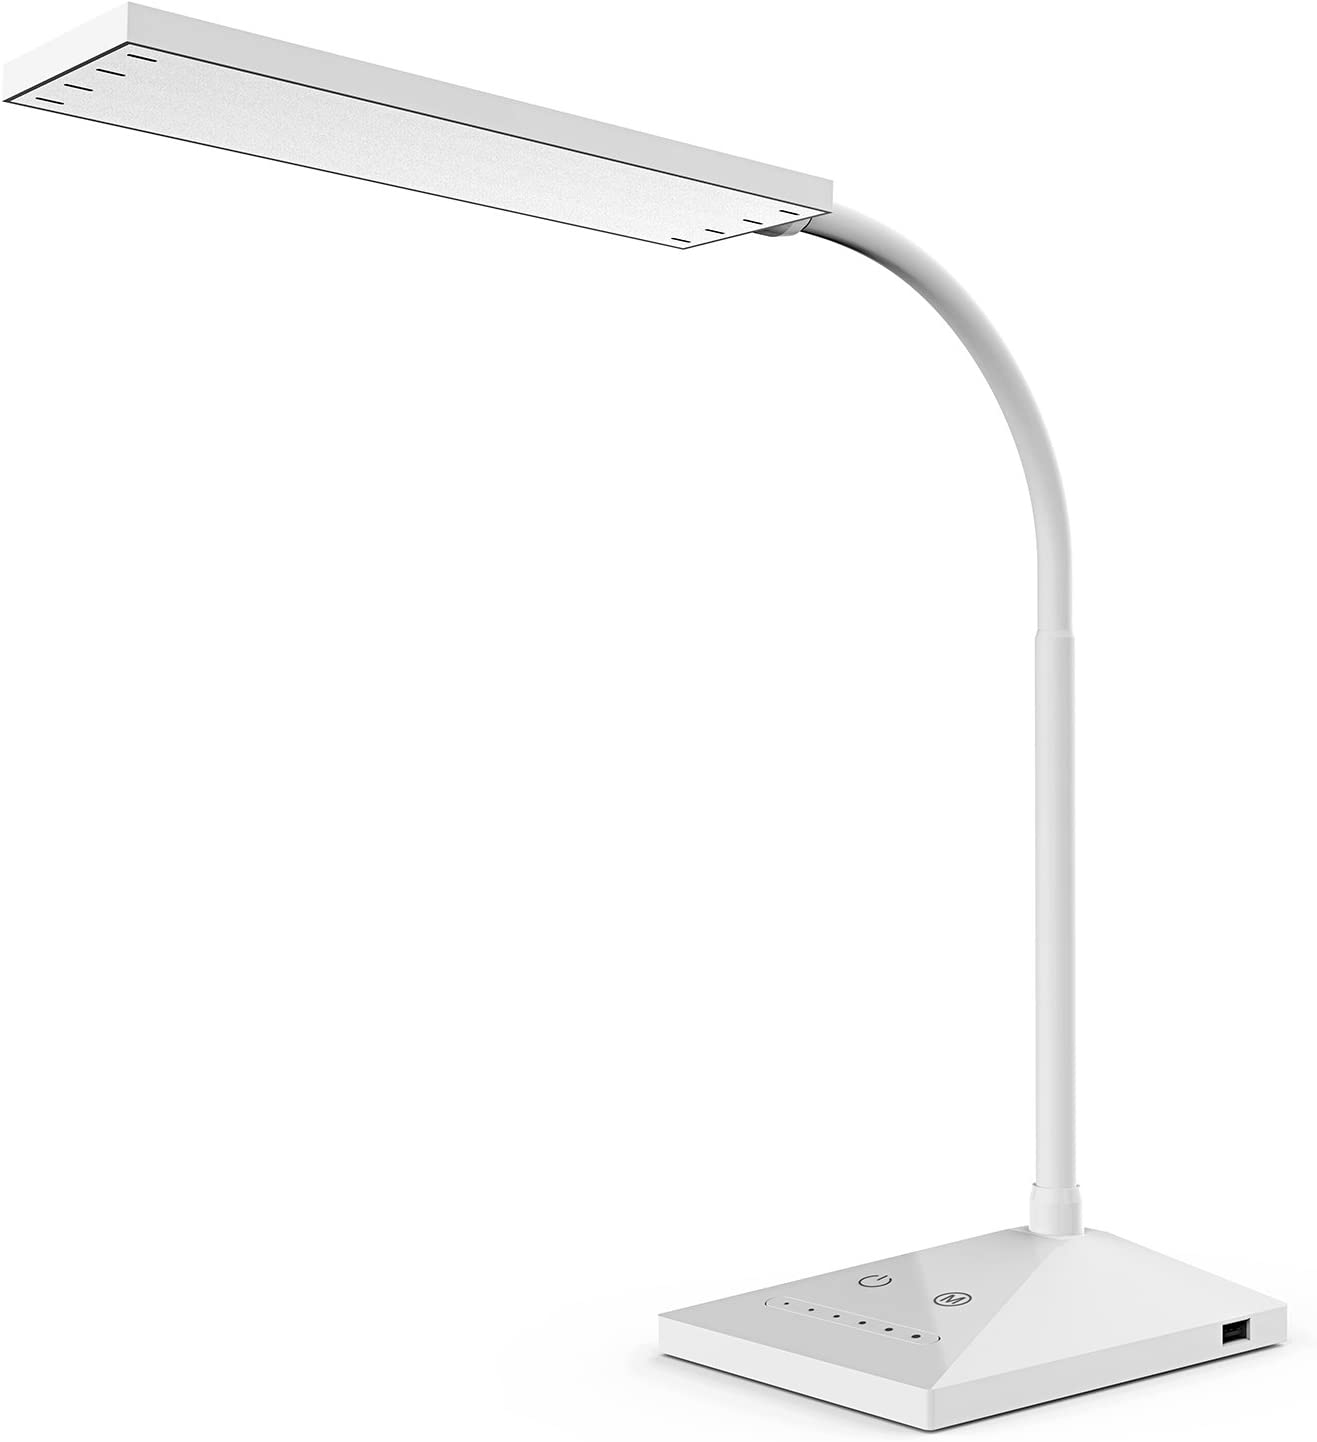 VICFUN LED Desk Lamp, 5 Color Modes with 7 Levels of Brightness, Eye-Caring Table Lamp Office Lamp with USB Charging Port, Touch Control Sensitive Dimmable 12W White